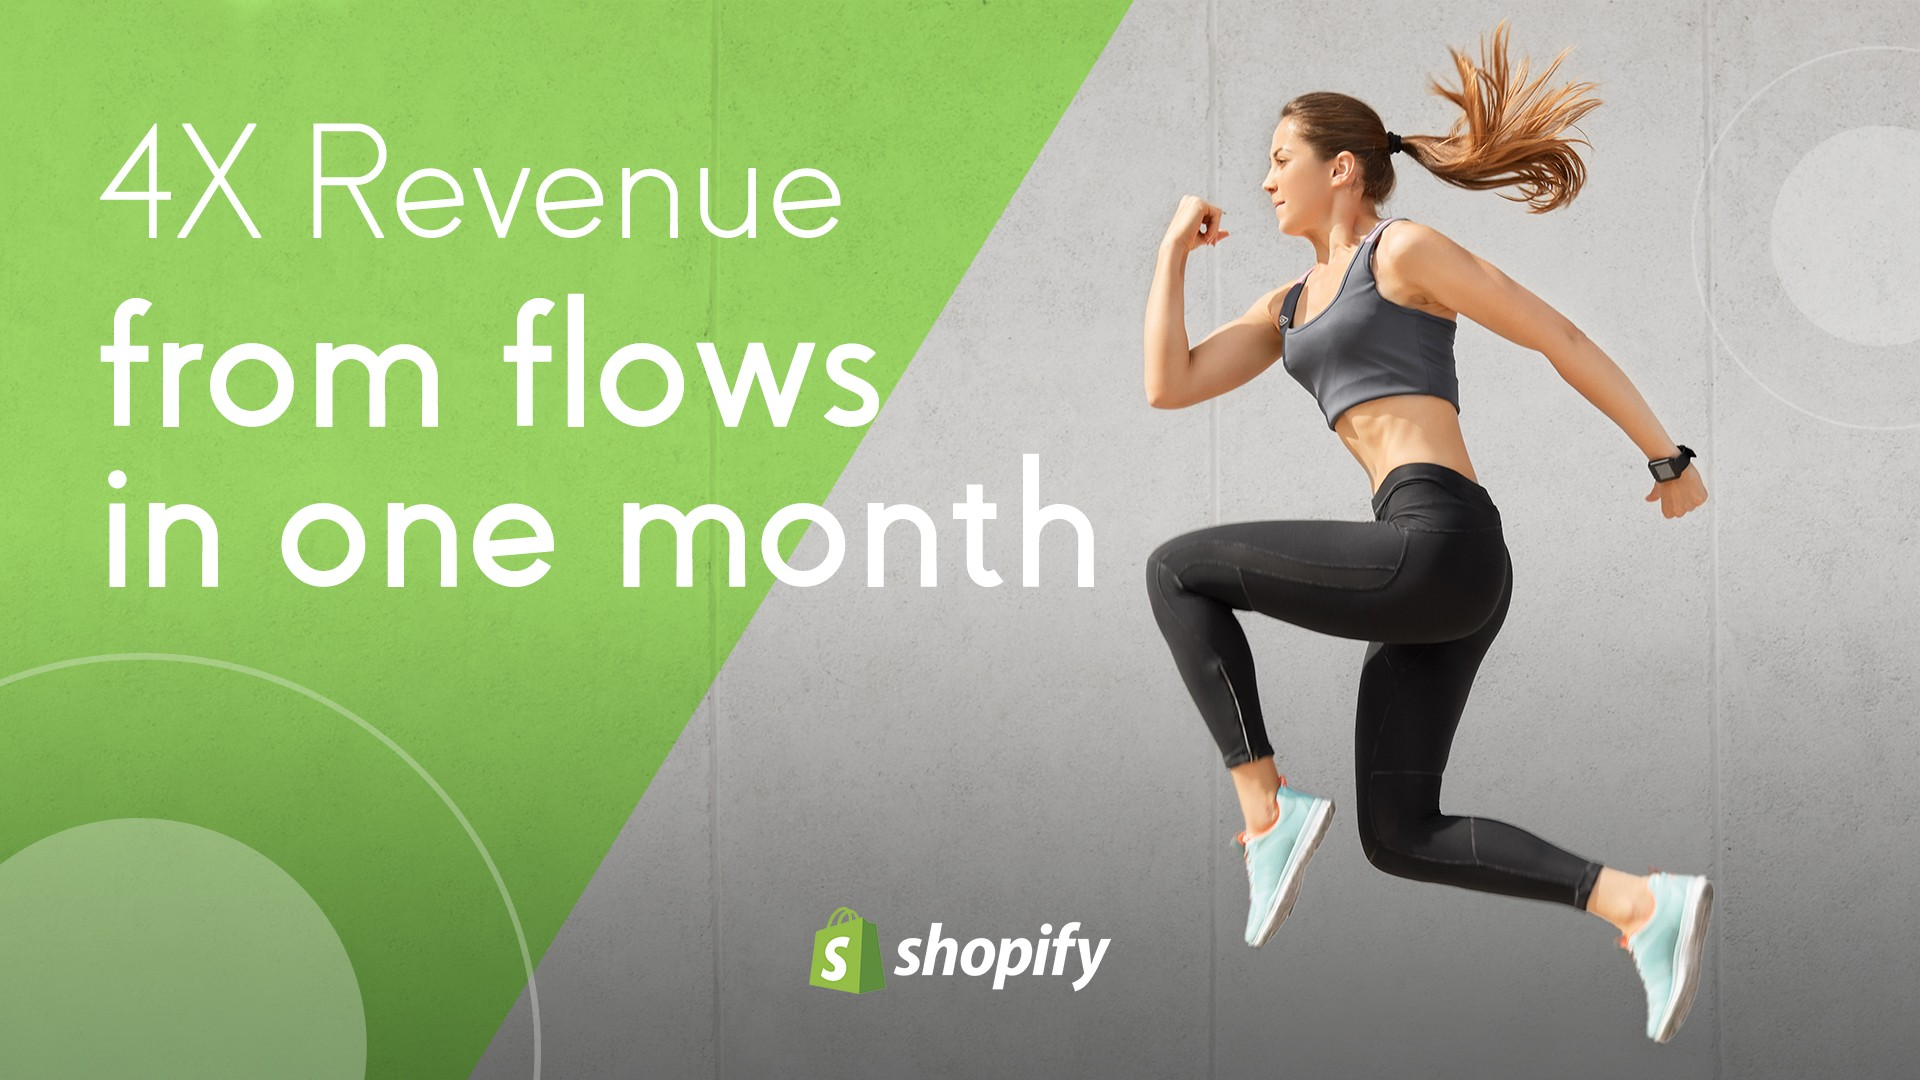 4x revenue from flows